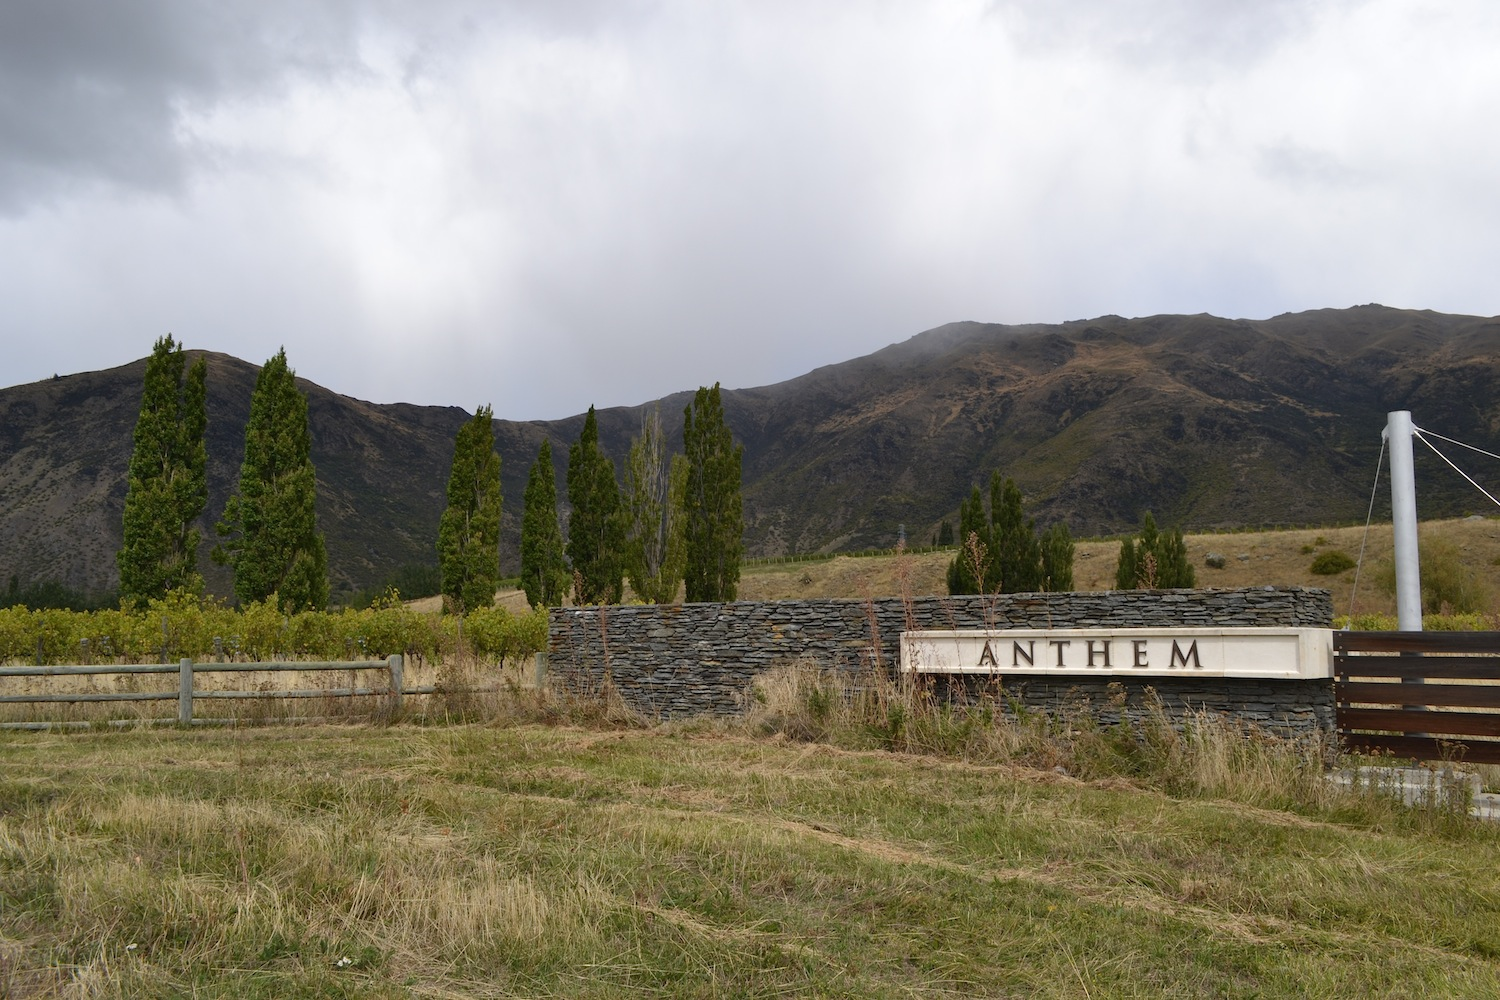 Anthem Winery